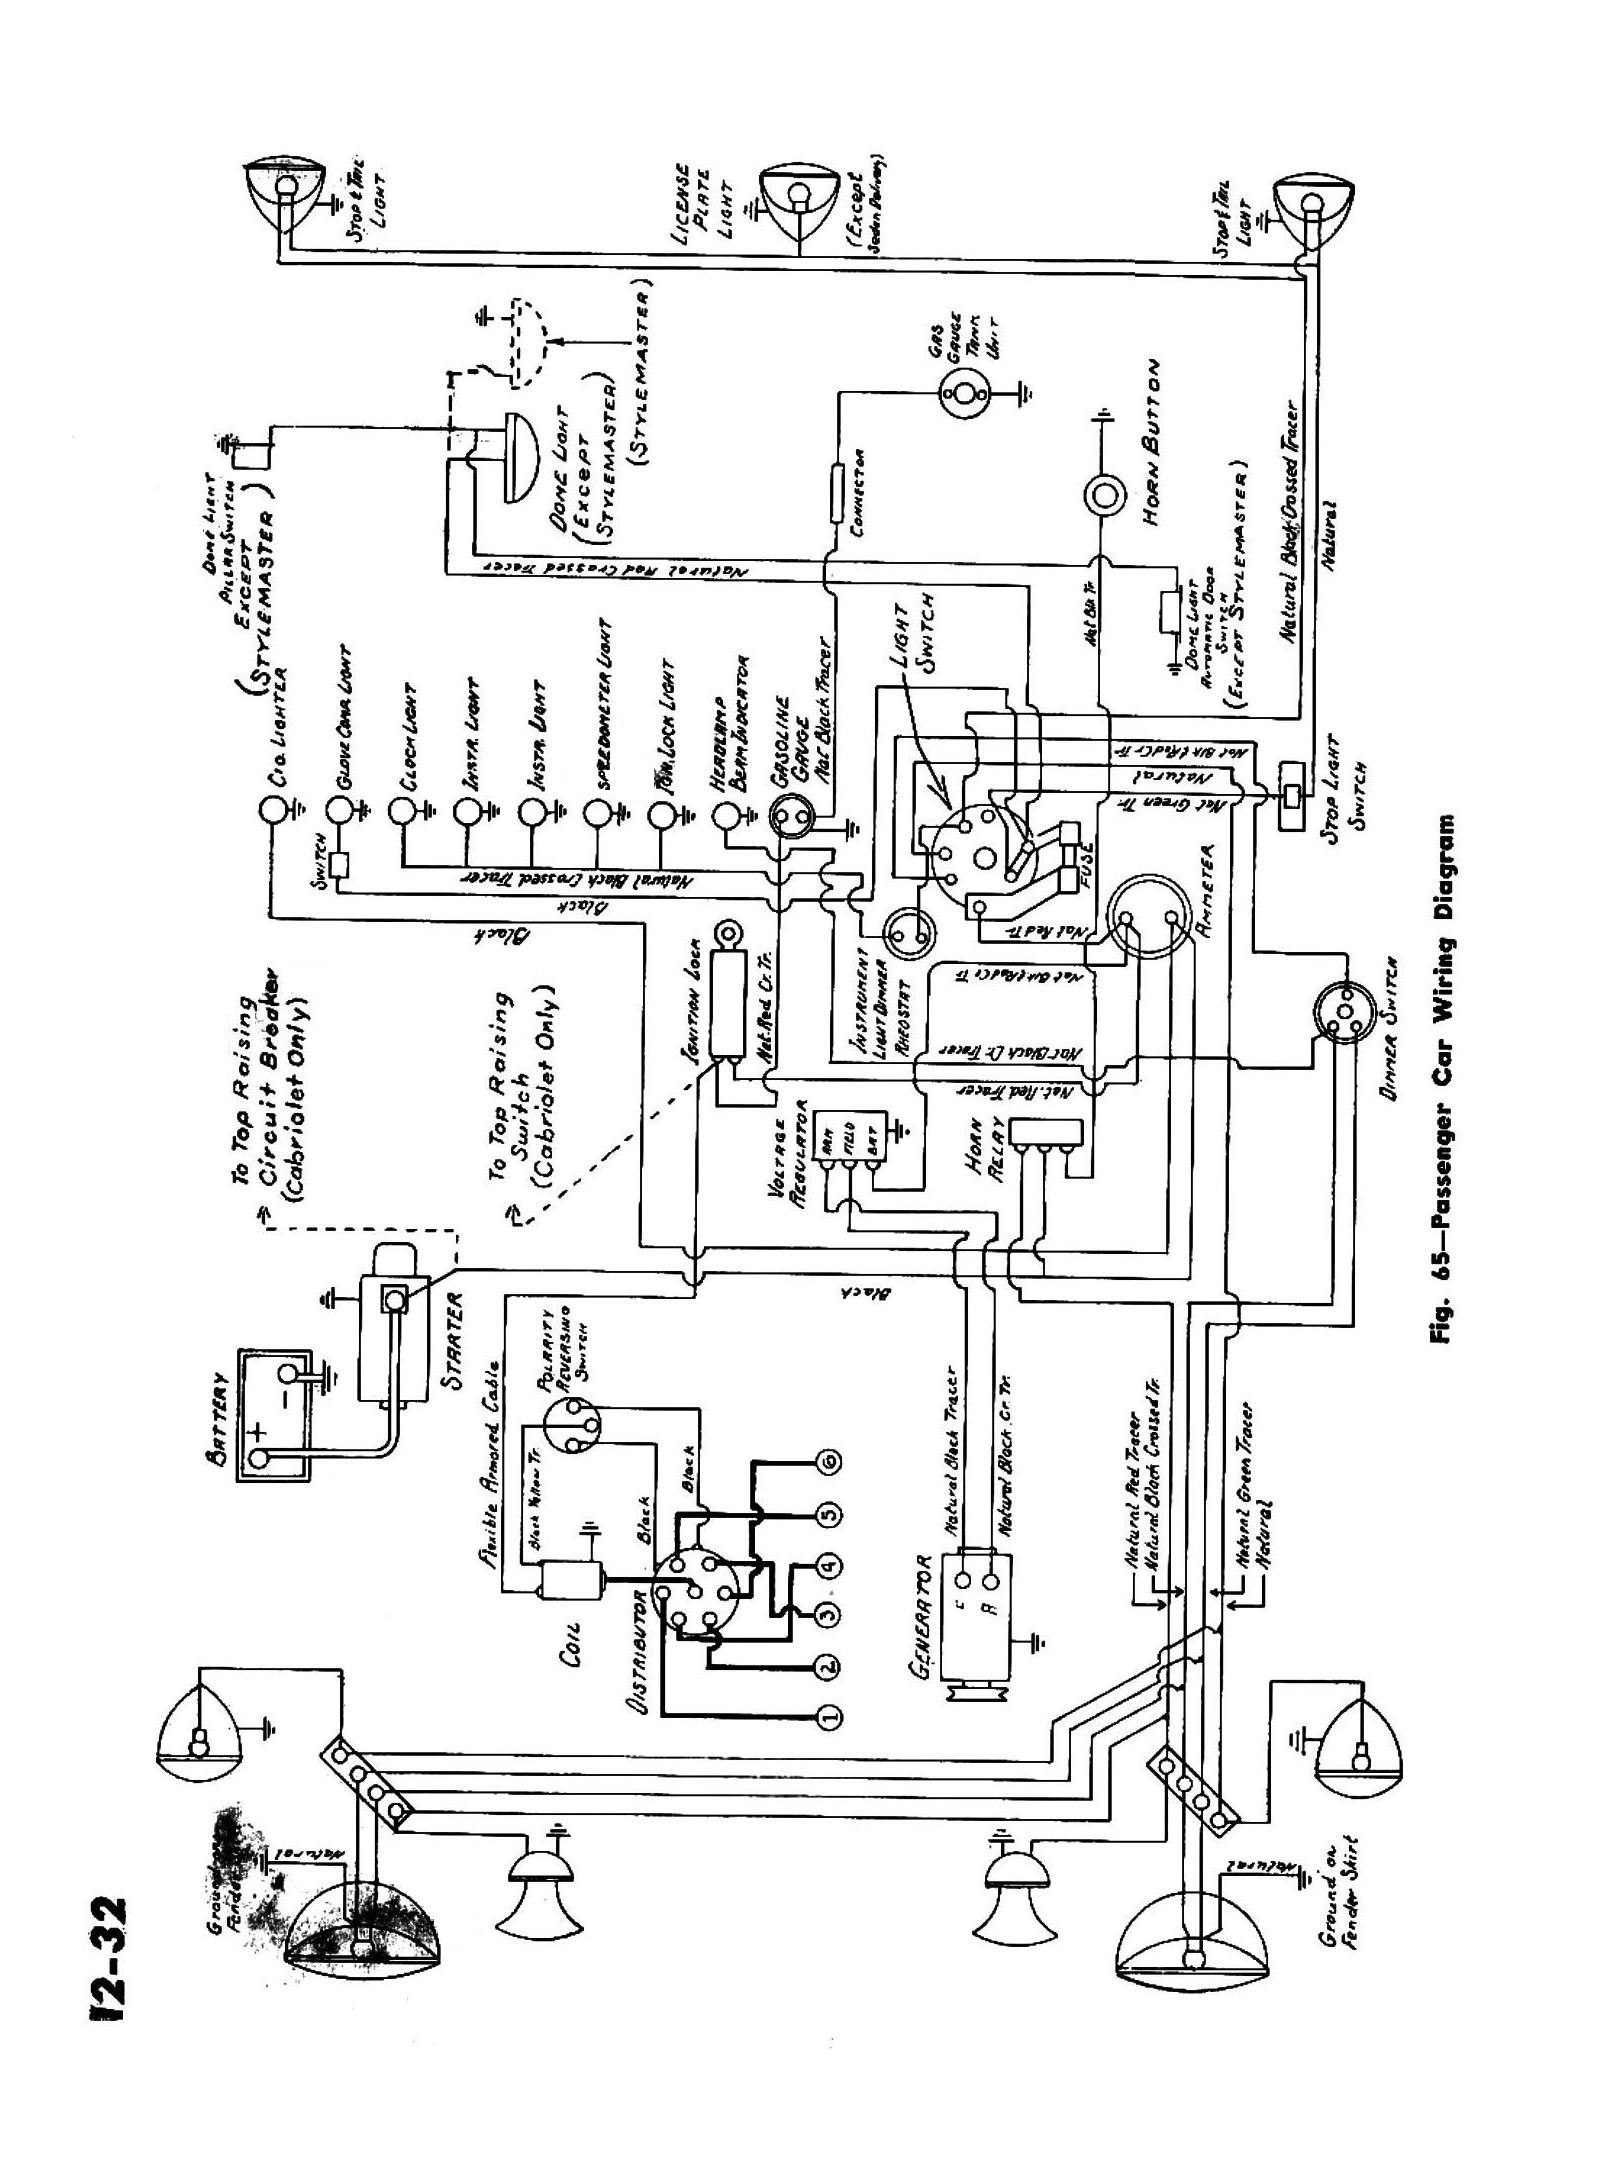 Latest Auto Electrical Wiring Diagram Manual Hd Wallpaper Free. Chevy Wiring Diagrams. Kawasaki. Free Auto Wiring Diagrams 2006 Kawasaki Klr650 At Scoala.co